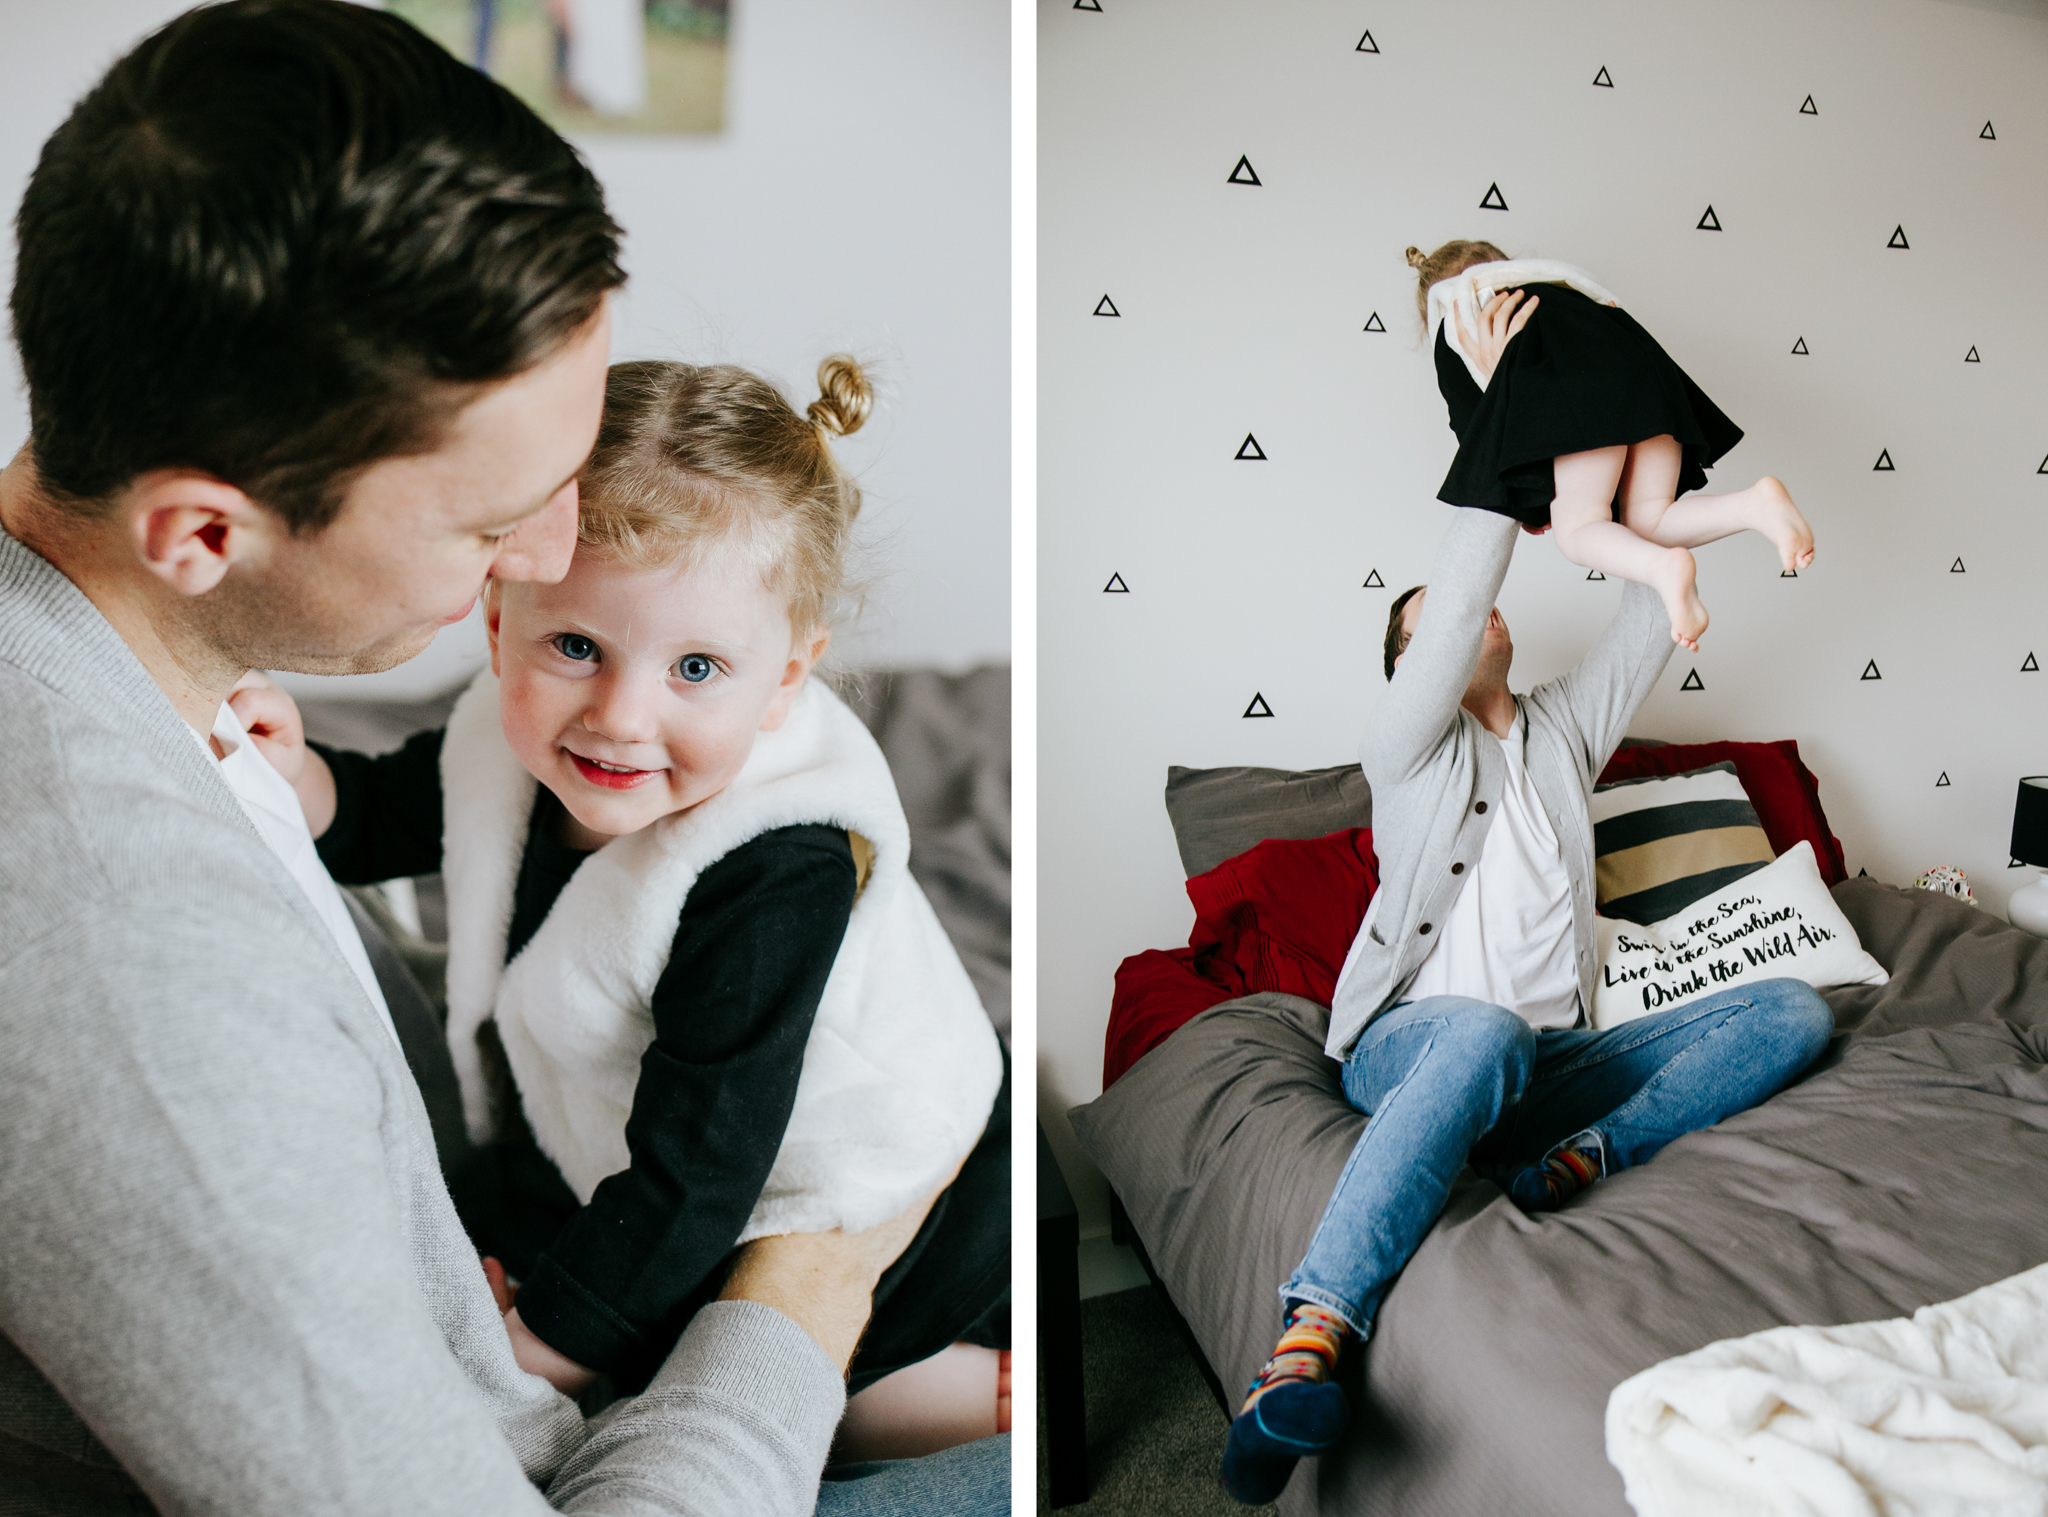 lethbridge-photographer-love-and-be-loved-photography-thornborough-family-lifestyle-session-image-picture-photo-106.jpg